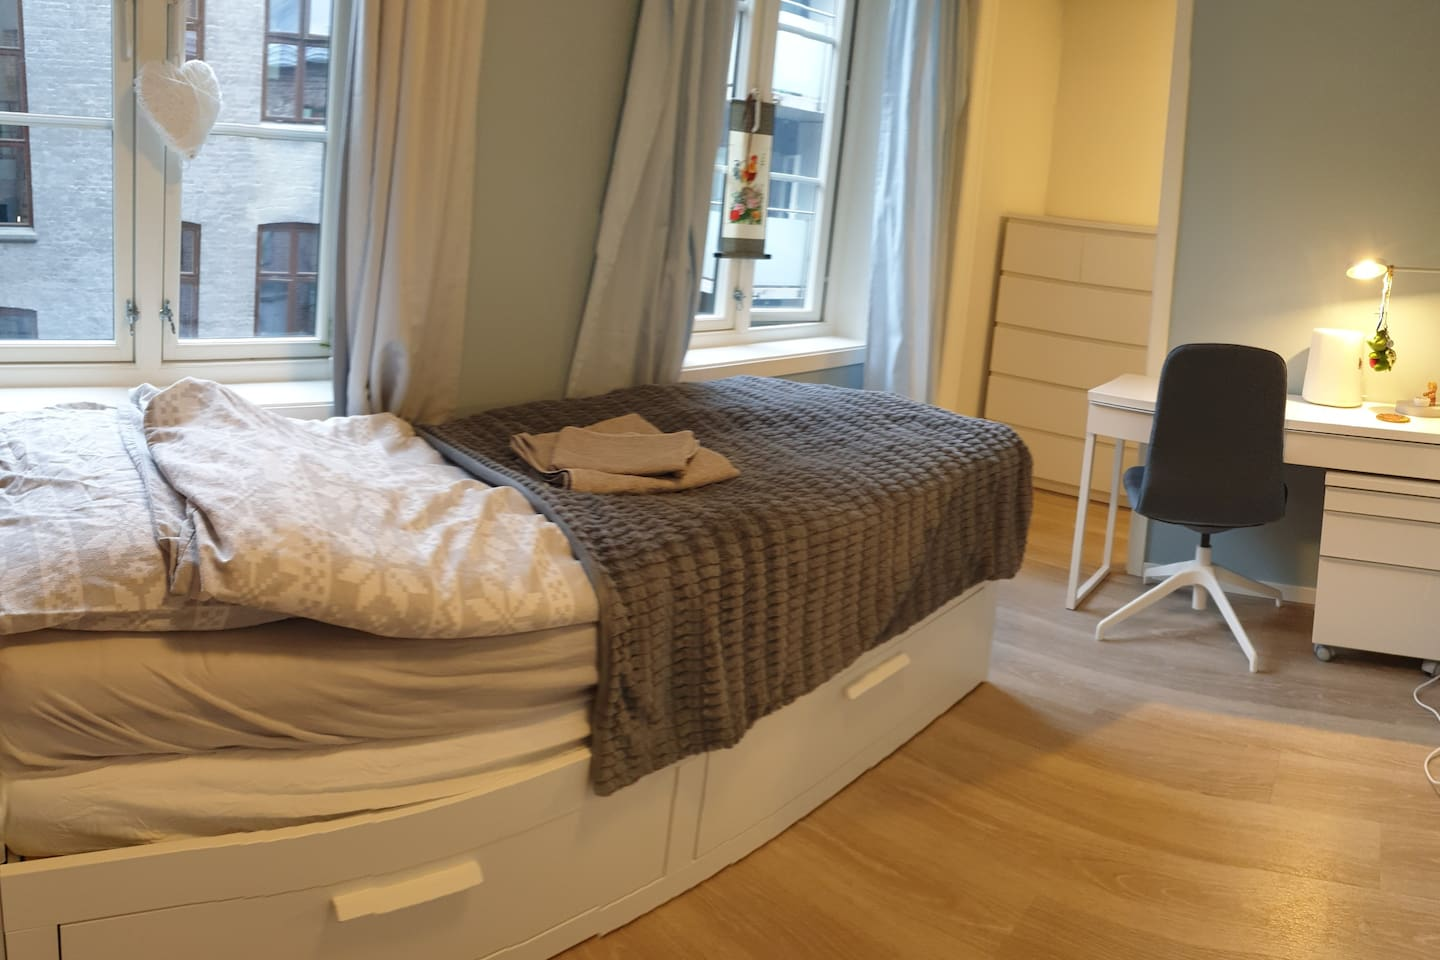 Modern room with lots of light. Heated floor with a thermostat. Adjacent storage and closet room is part of the room.